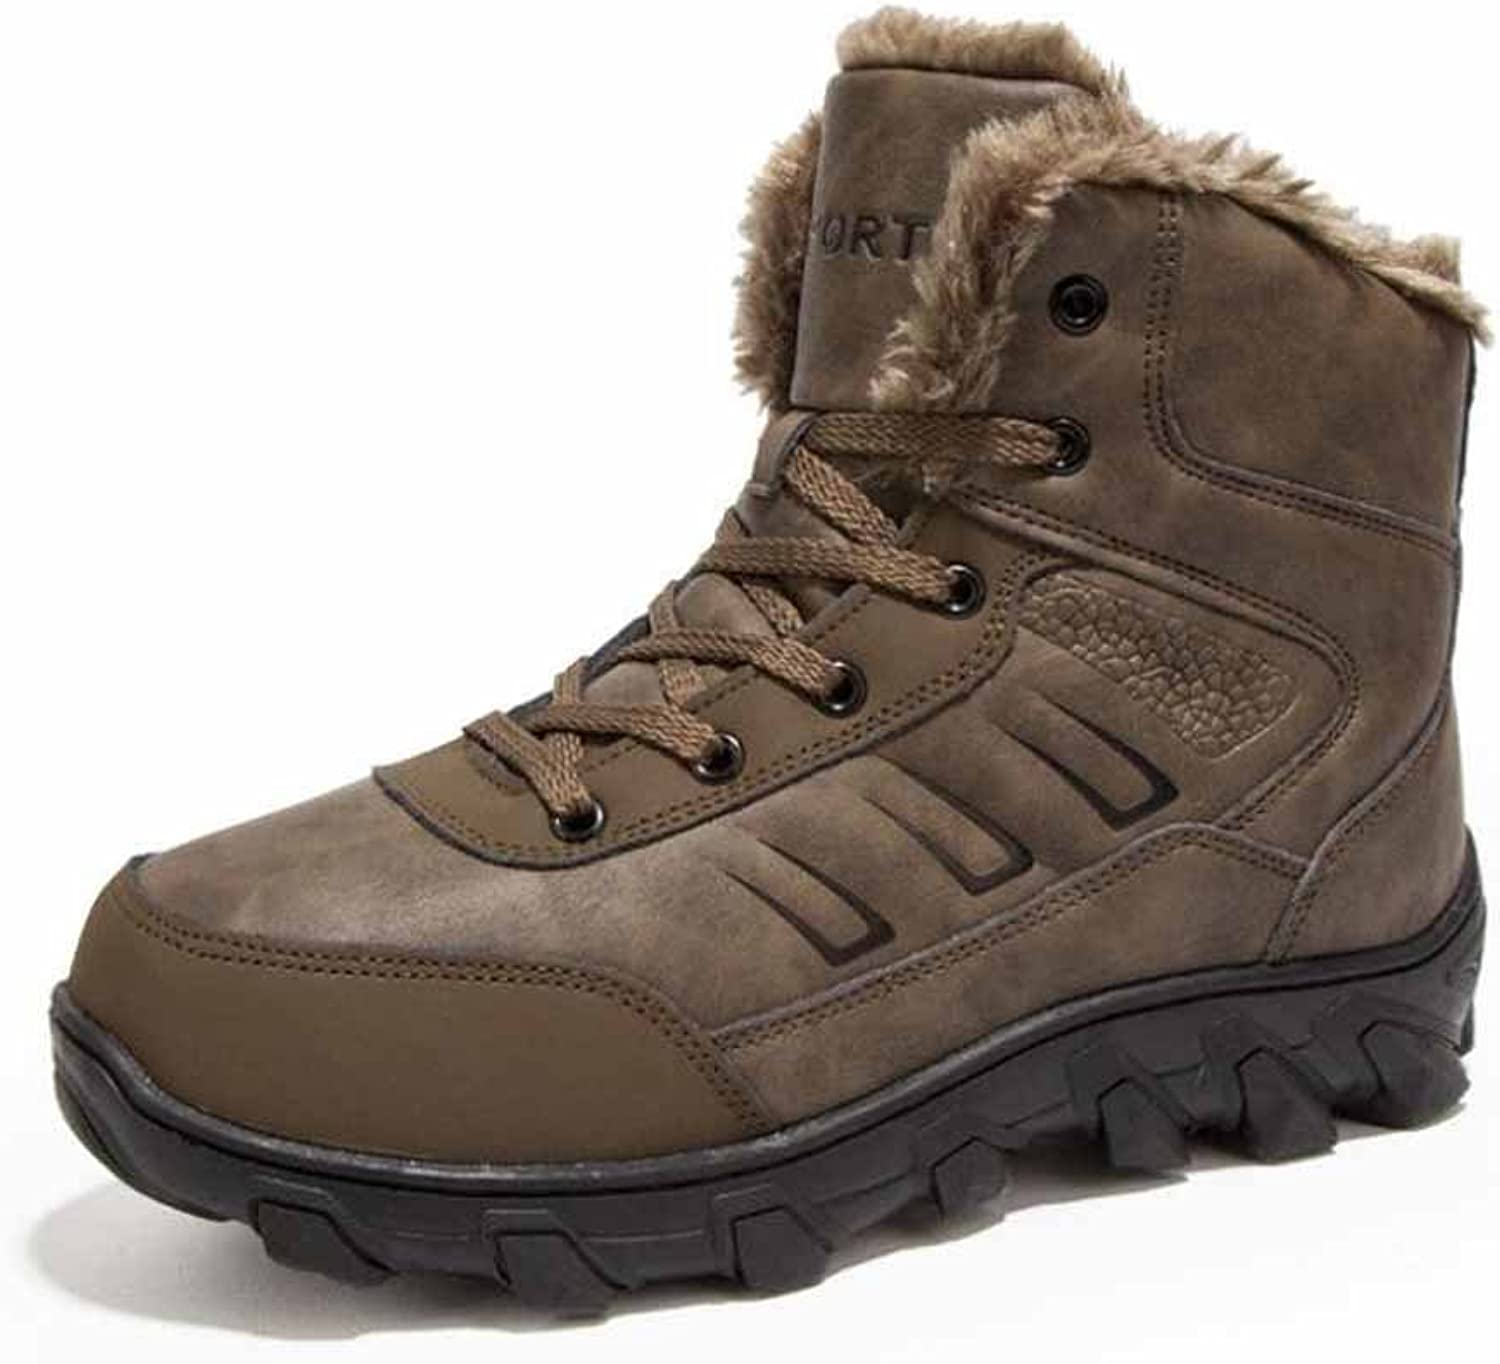 Men Snow Boots 2017 Winter Warm Fur Lined Outdoor Sports High-top Cotton Hiking Boots Large Size